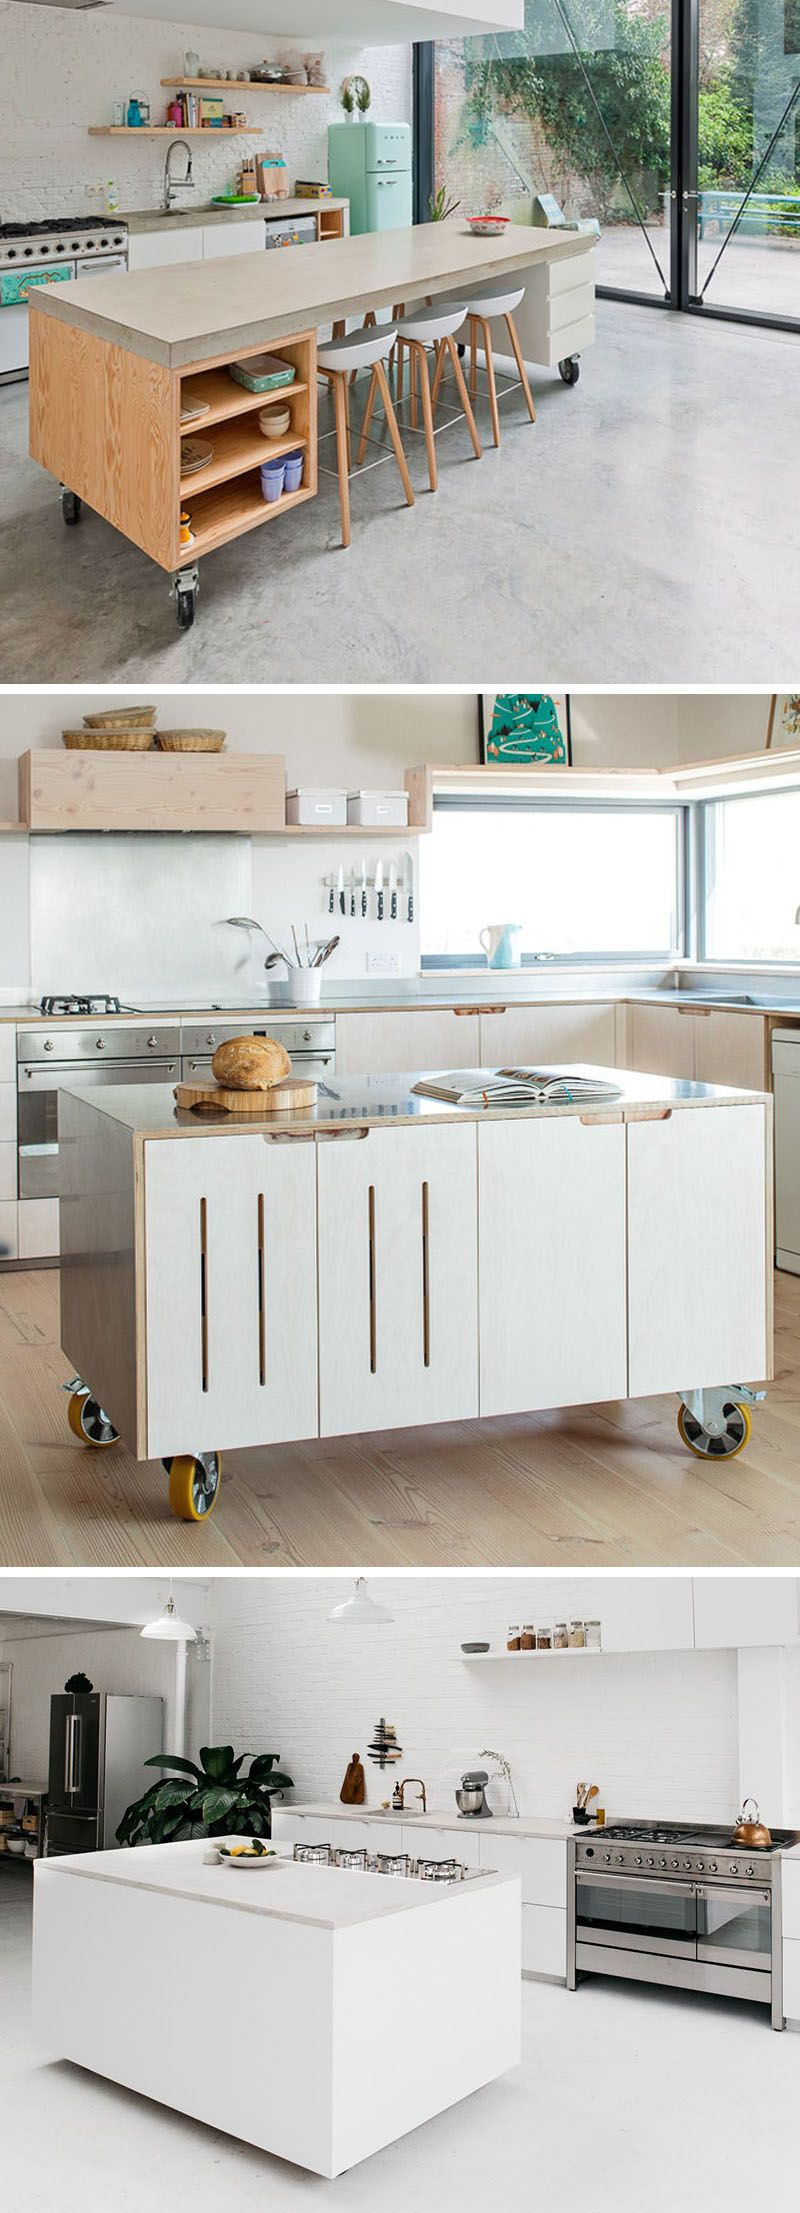 8 Examples Of Kitchens With Movable Islands That Make It Easy To Change The Layout Modern Kitchen Island Mobile Kitchen Island Kitchen Interior